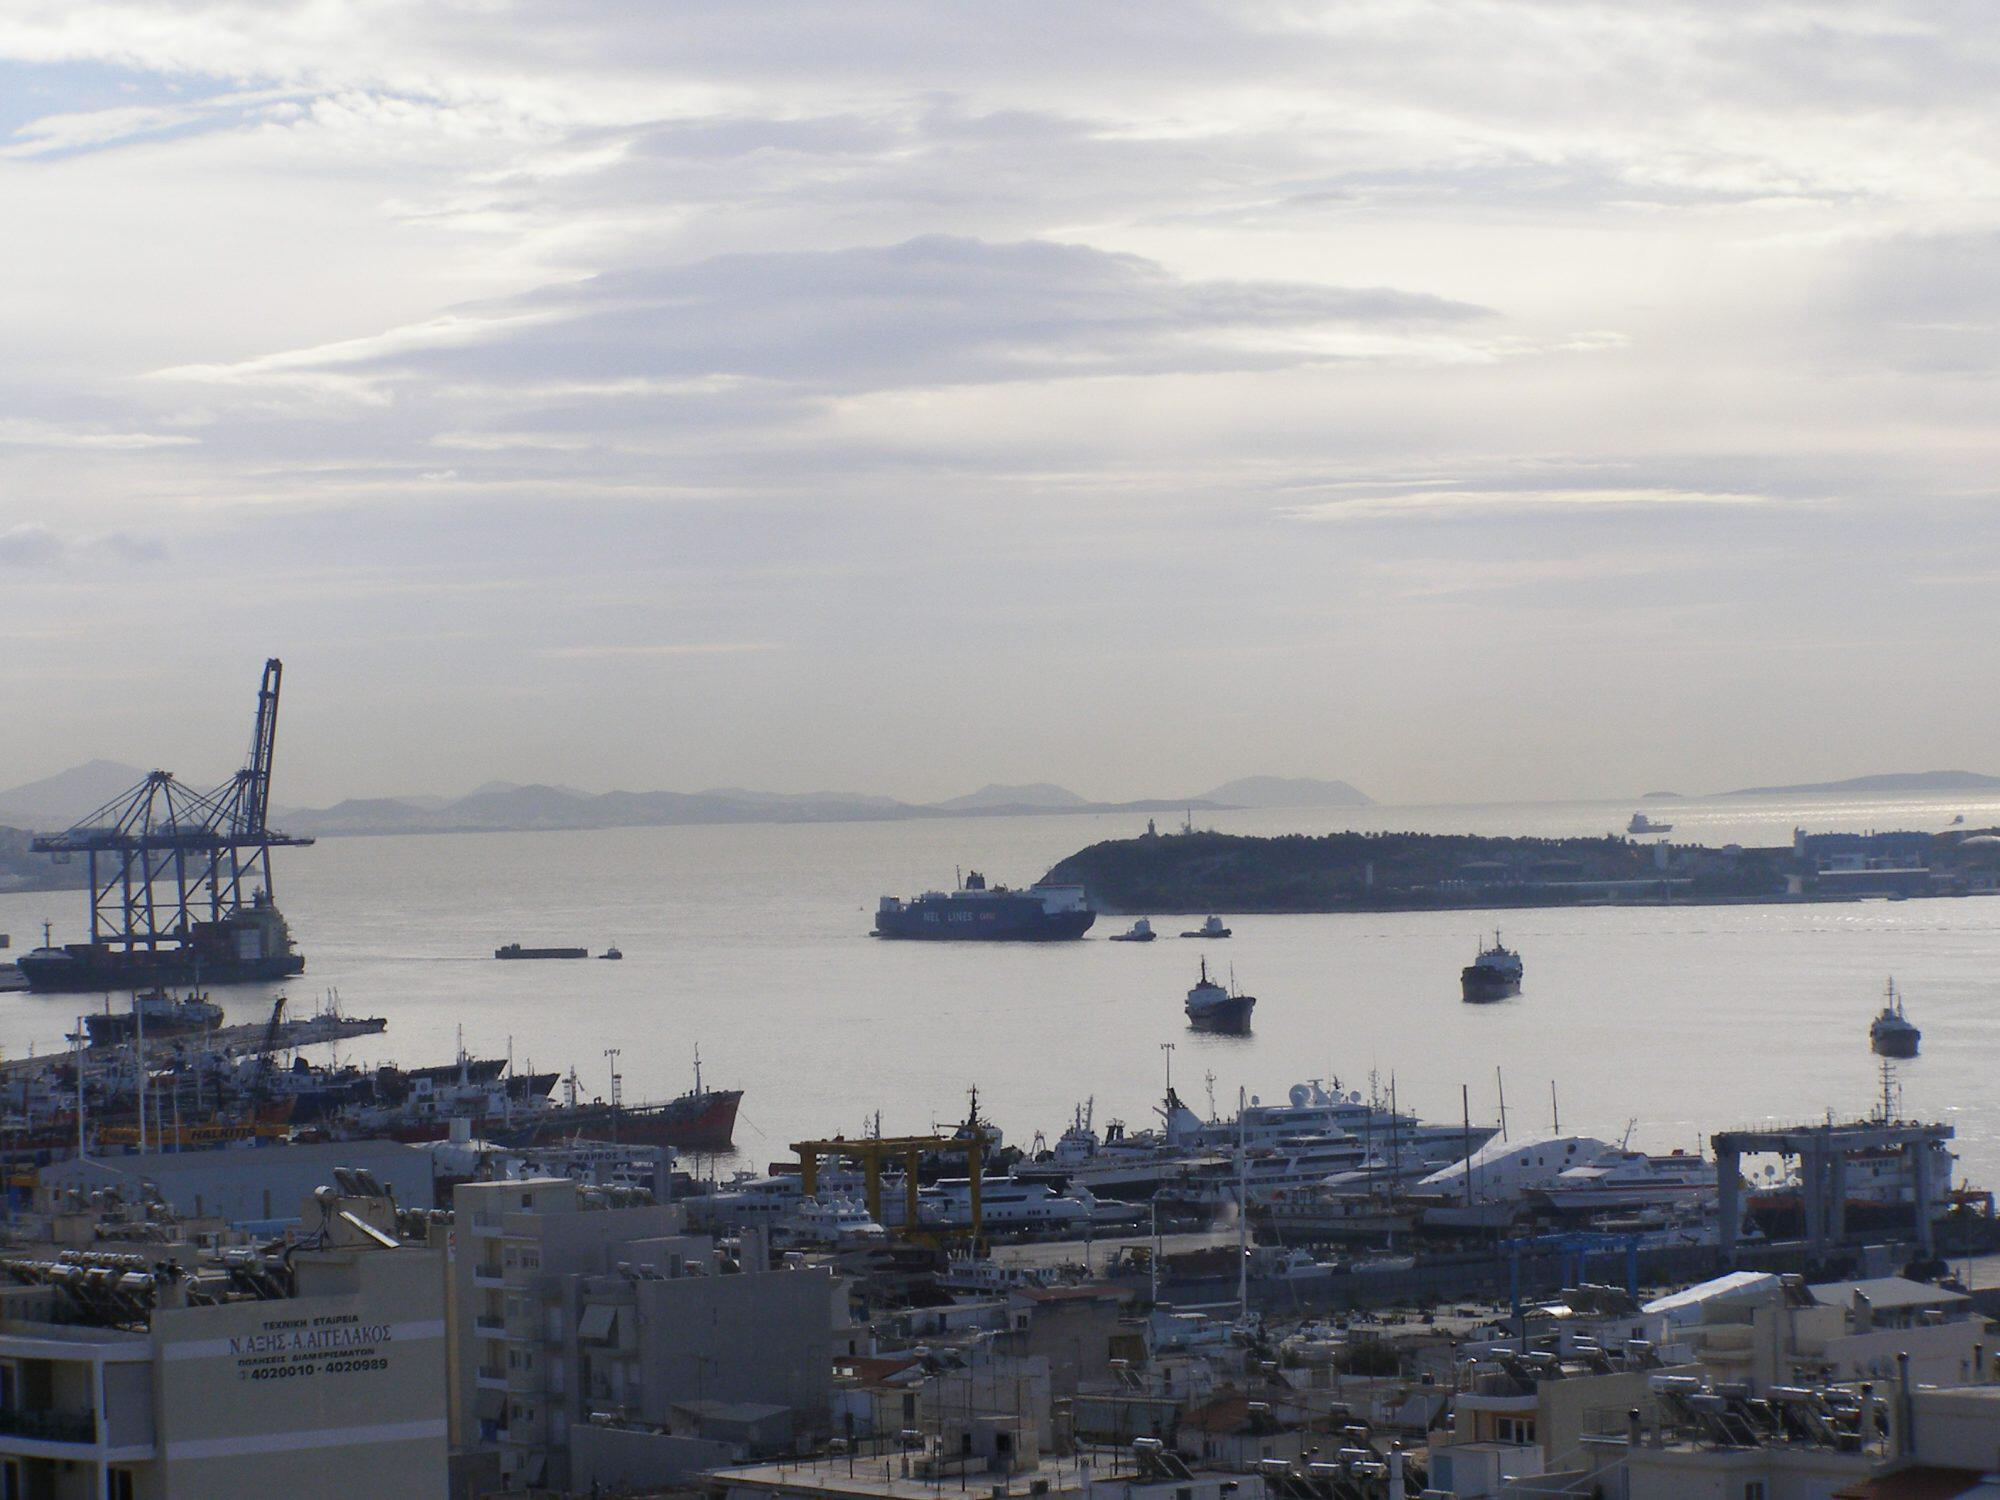 Additional 500 million euros worth of investments in the port of